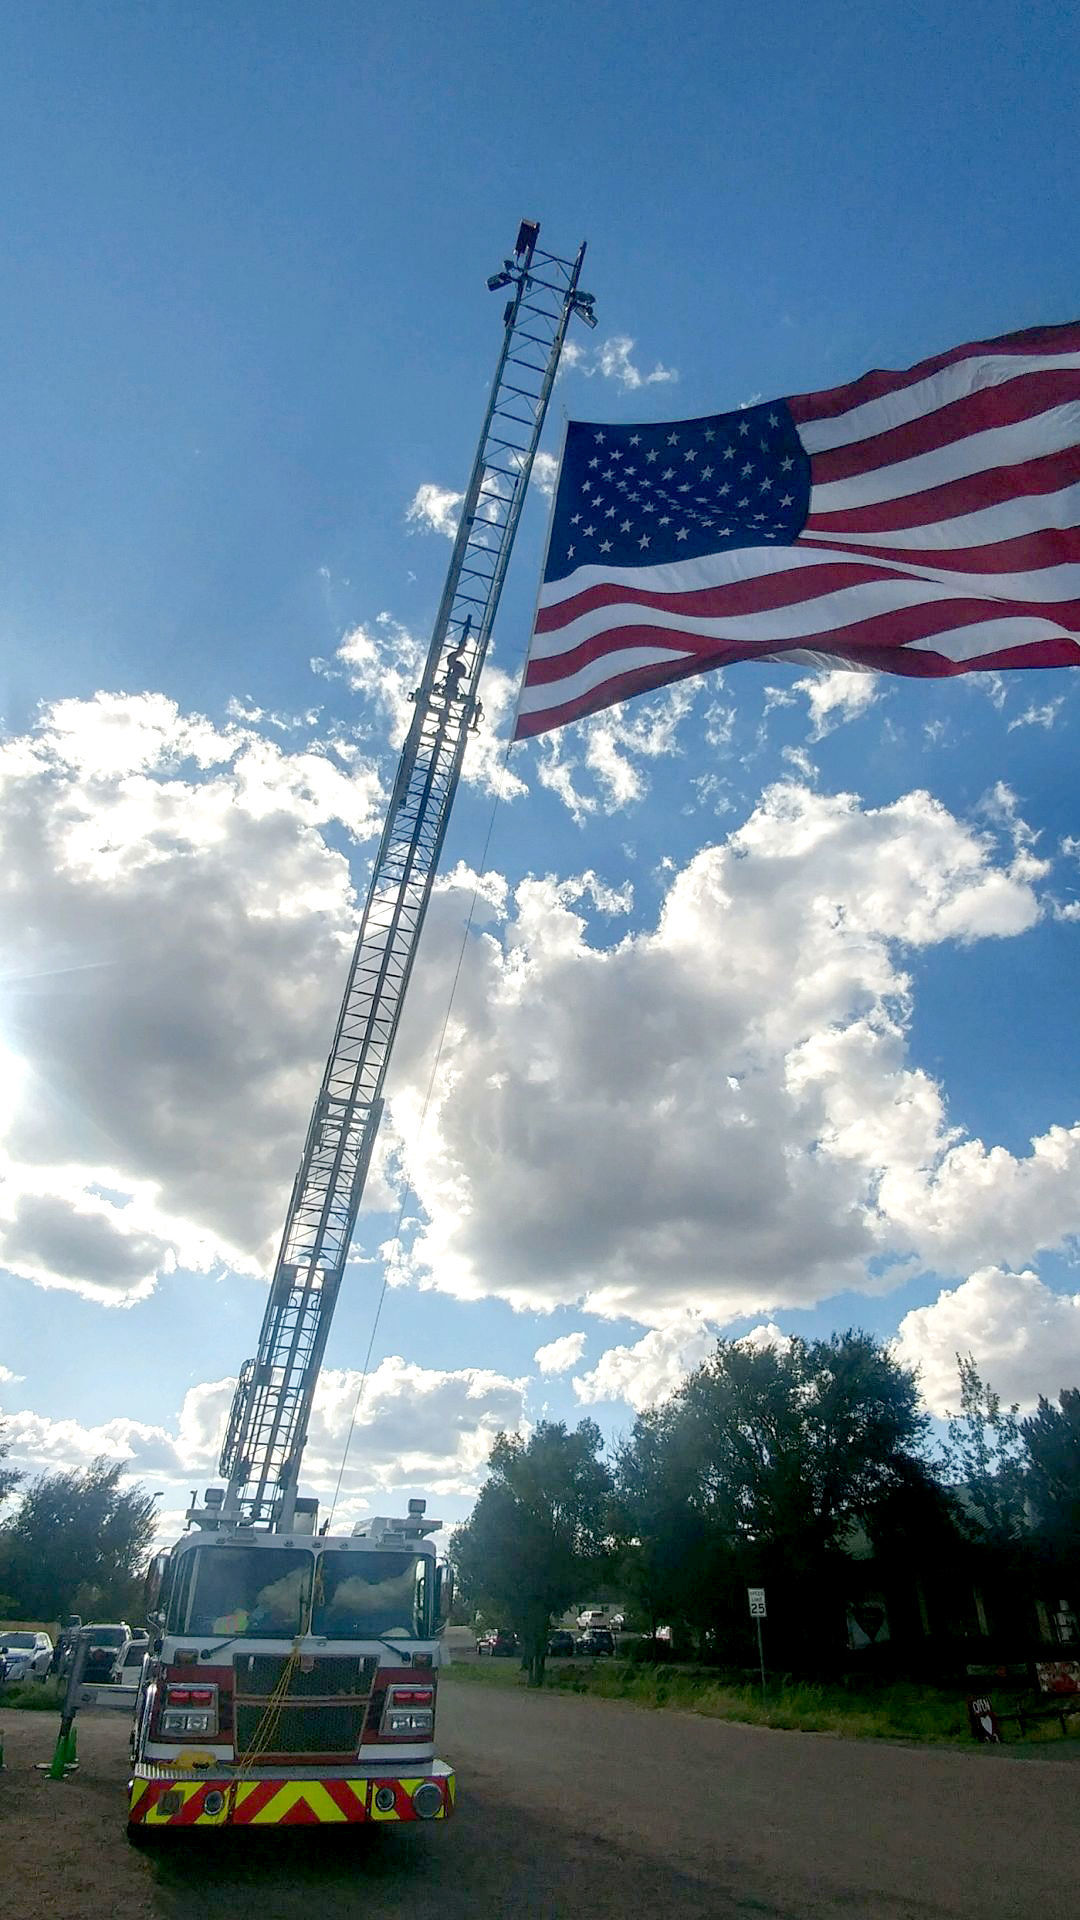 Timber Mesa Fire and Medical District anniversary - ladder truck with US flag